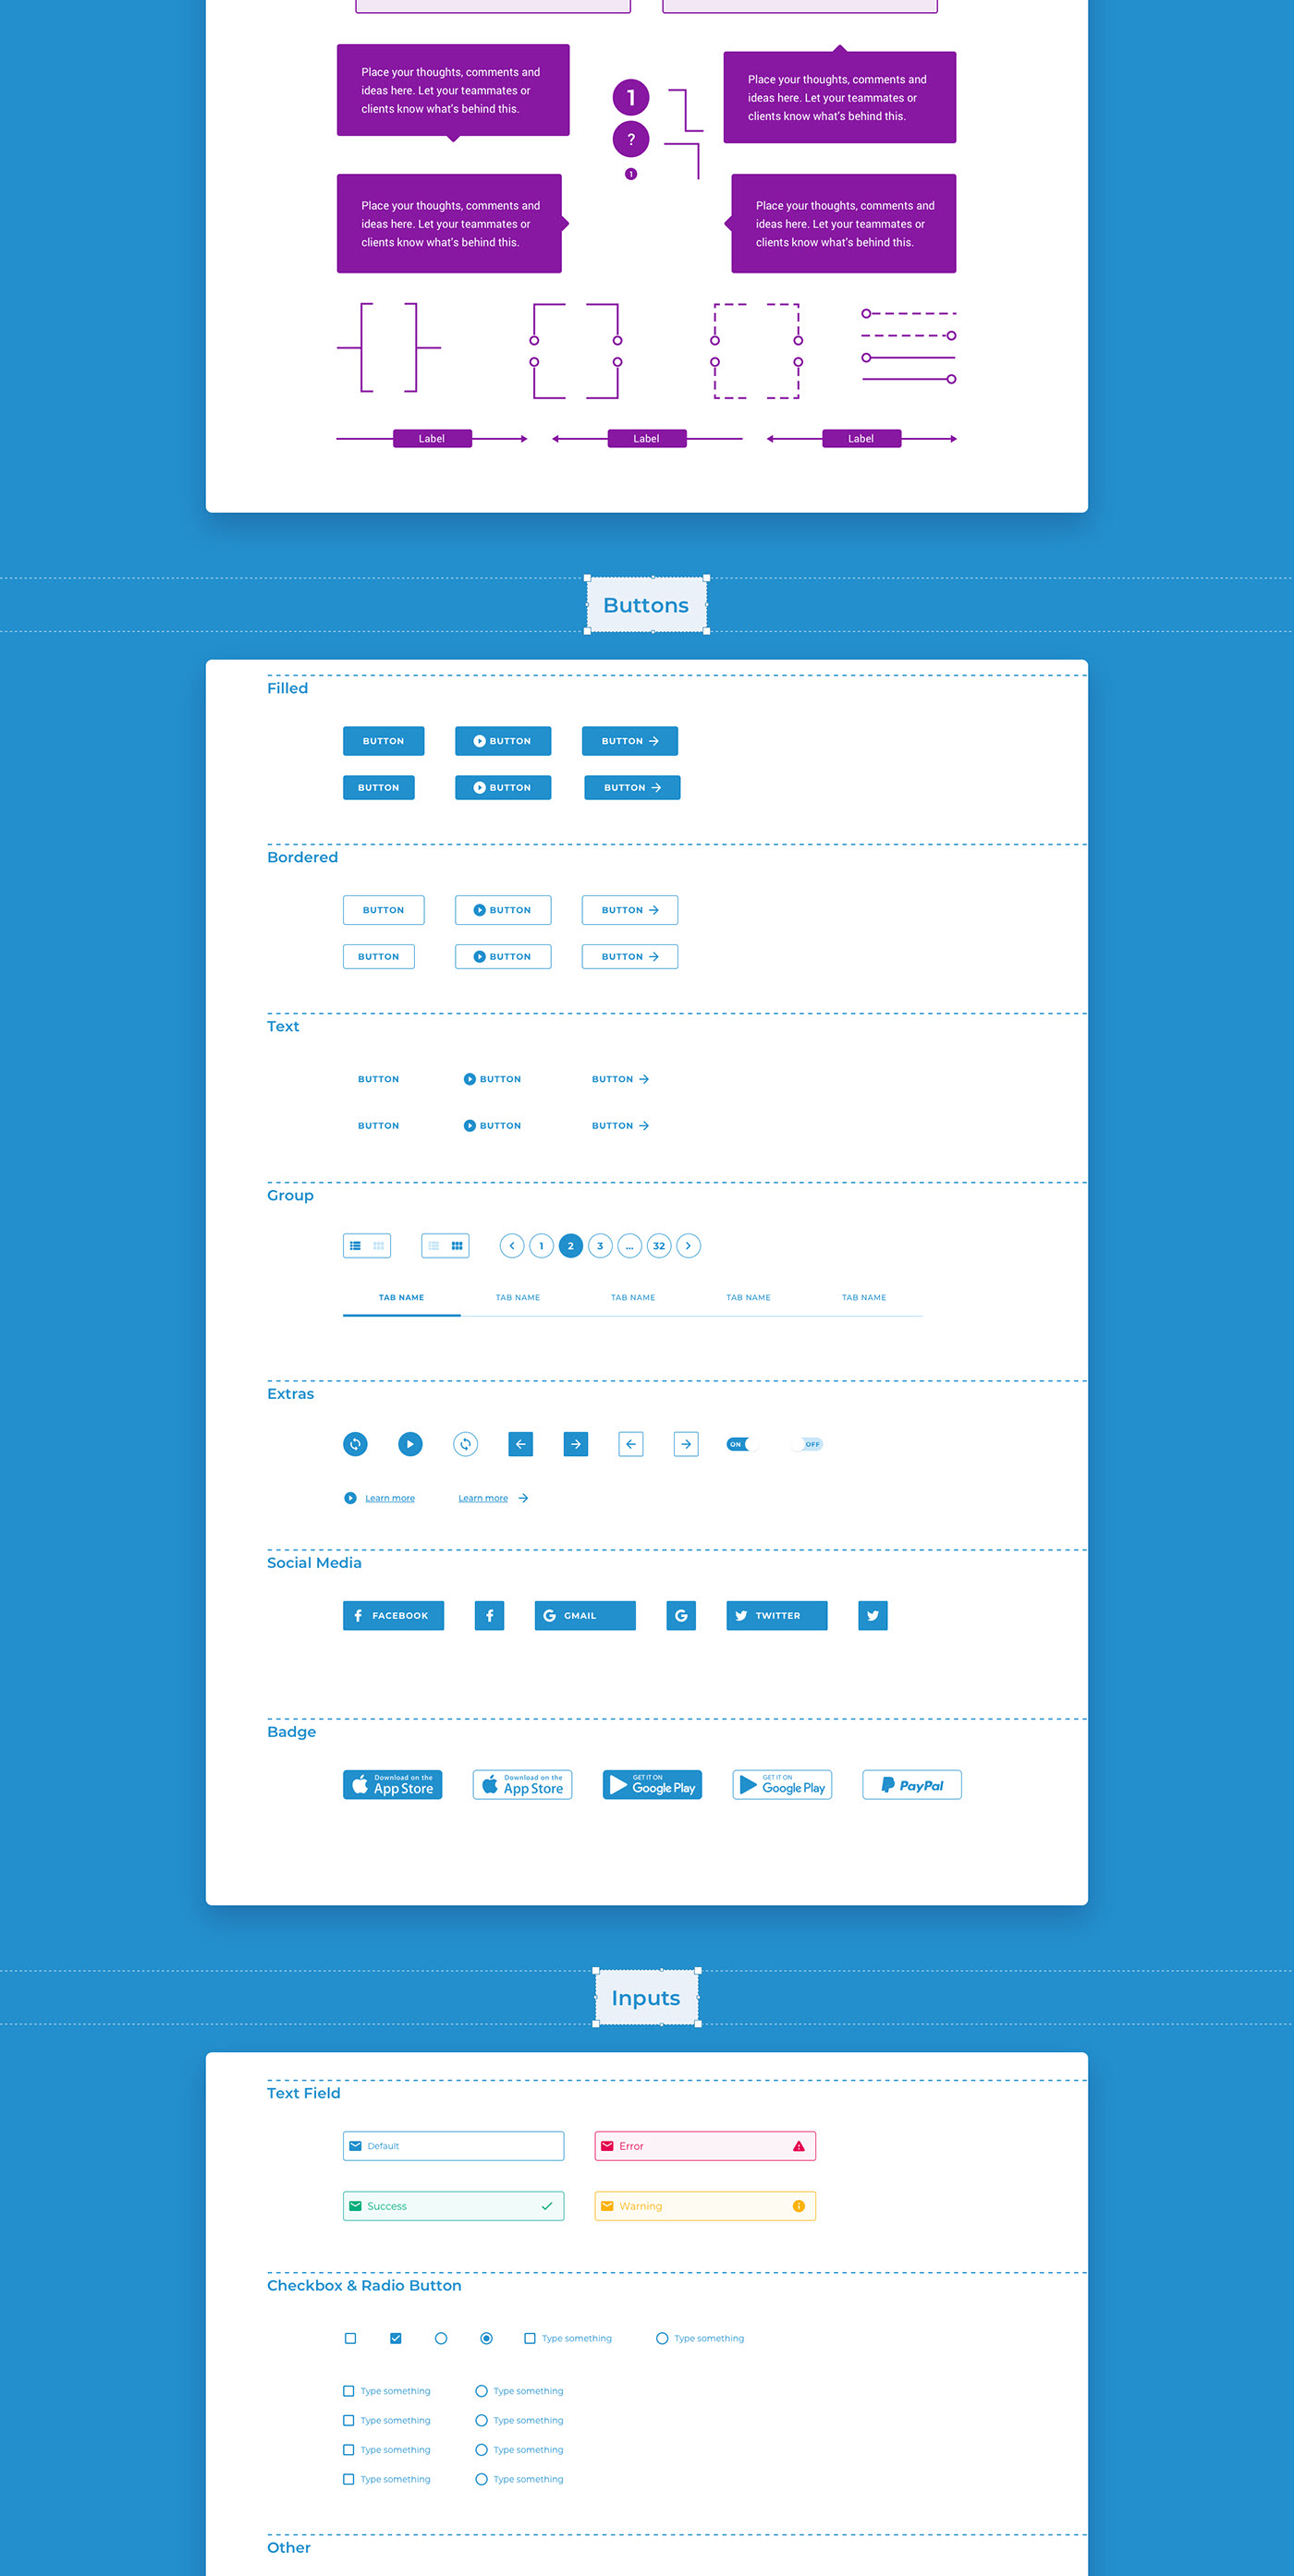 01a90a57728315.5f82276d38eea - Wireland - Wireframe Library for Web Design Projects - Sketch Template